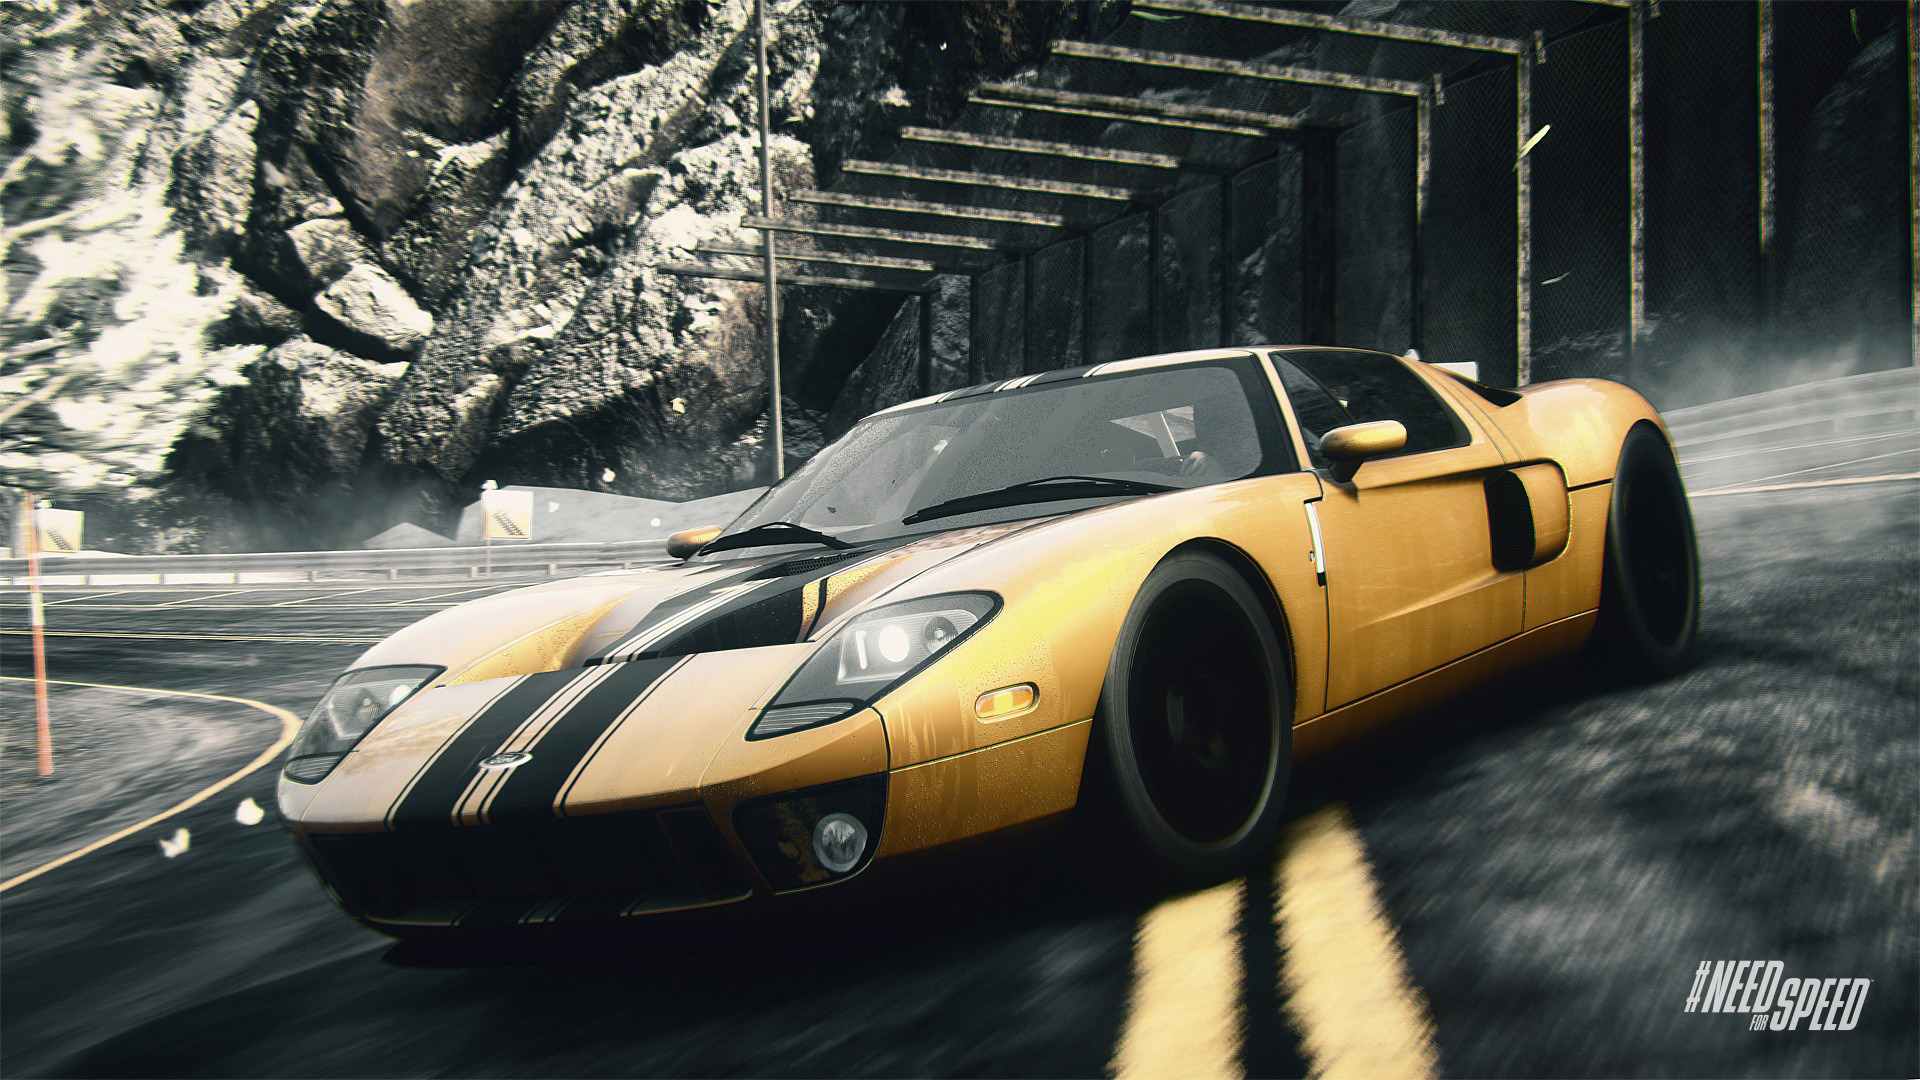 Need for Speed: Rivals Wallpaper in 1920x1080